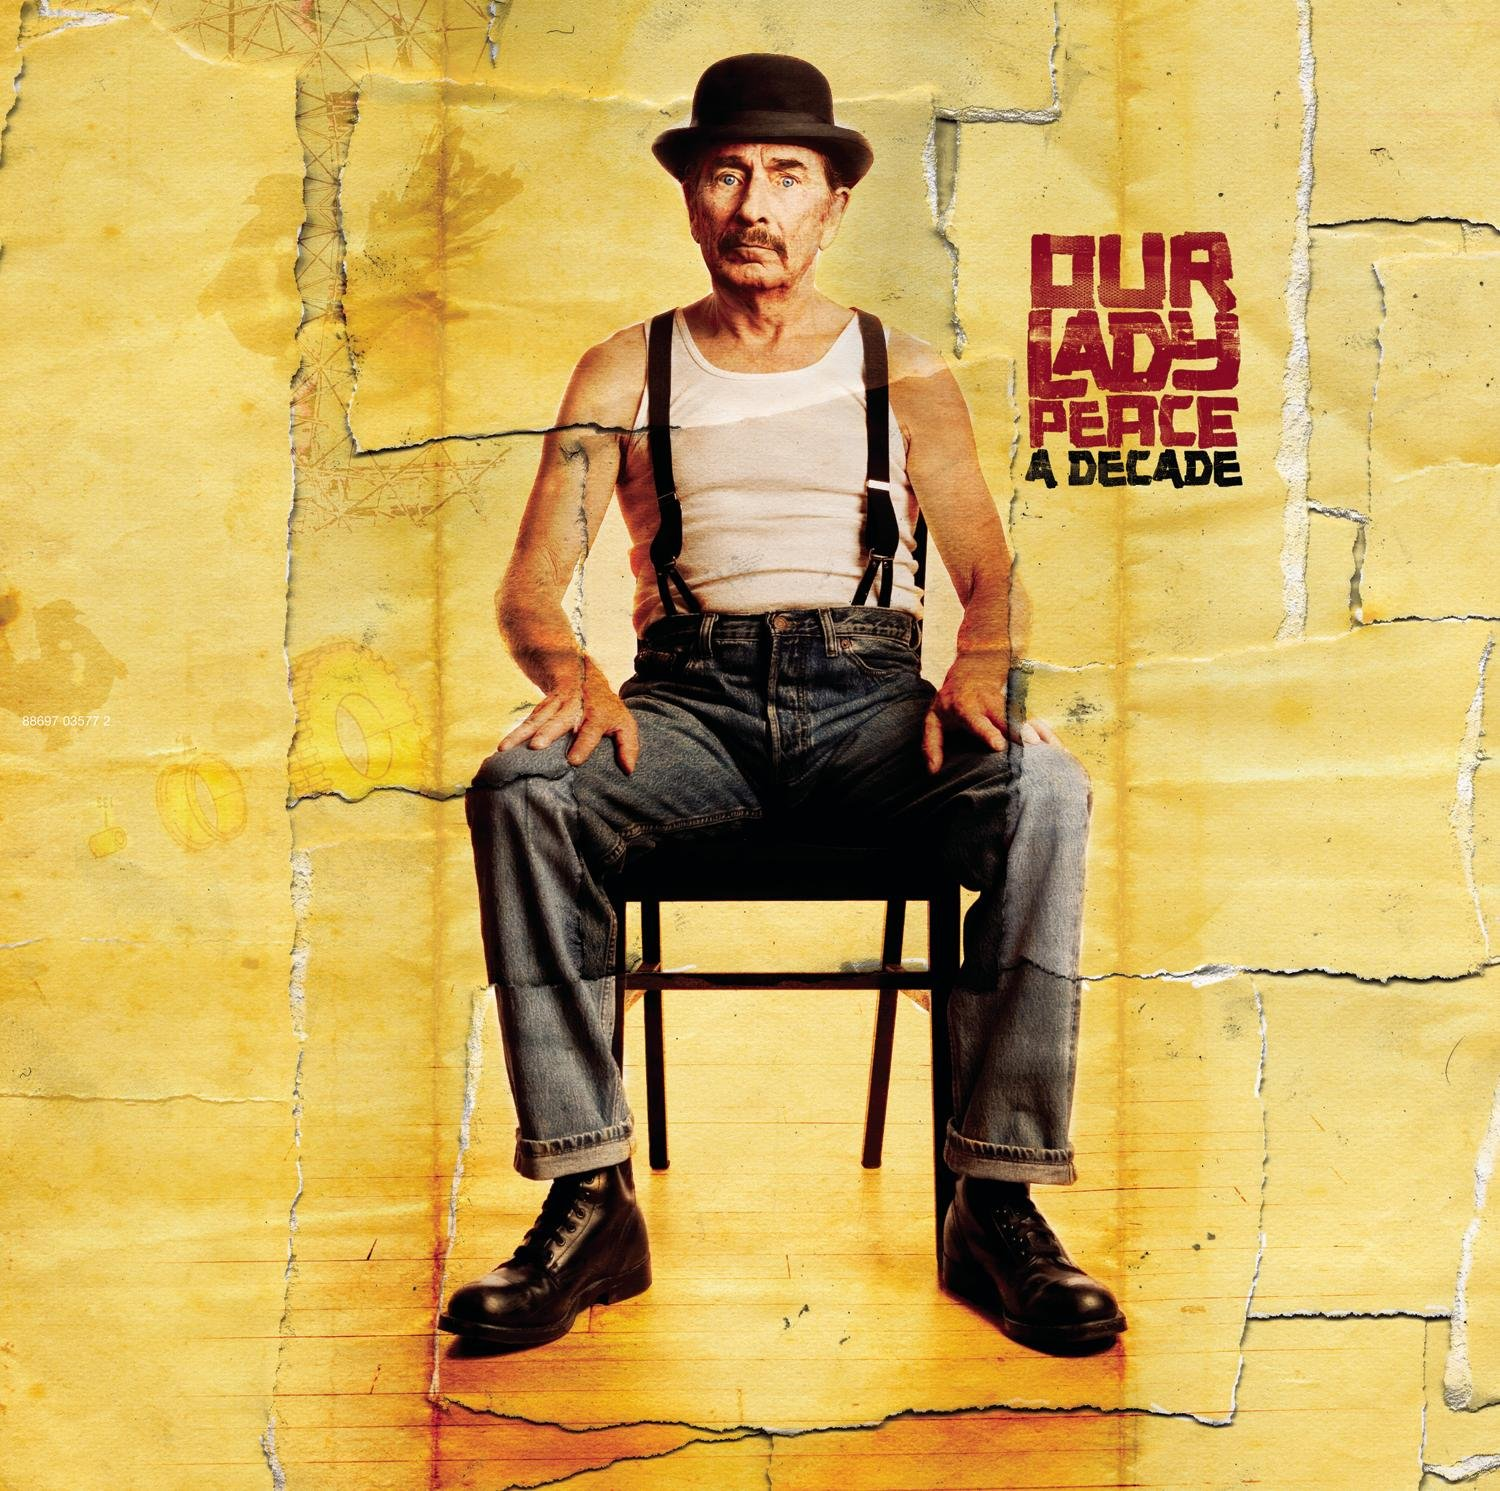 Our Lady Peace, A Decade